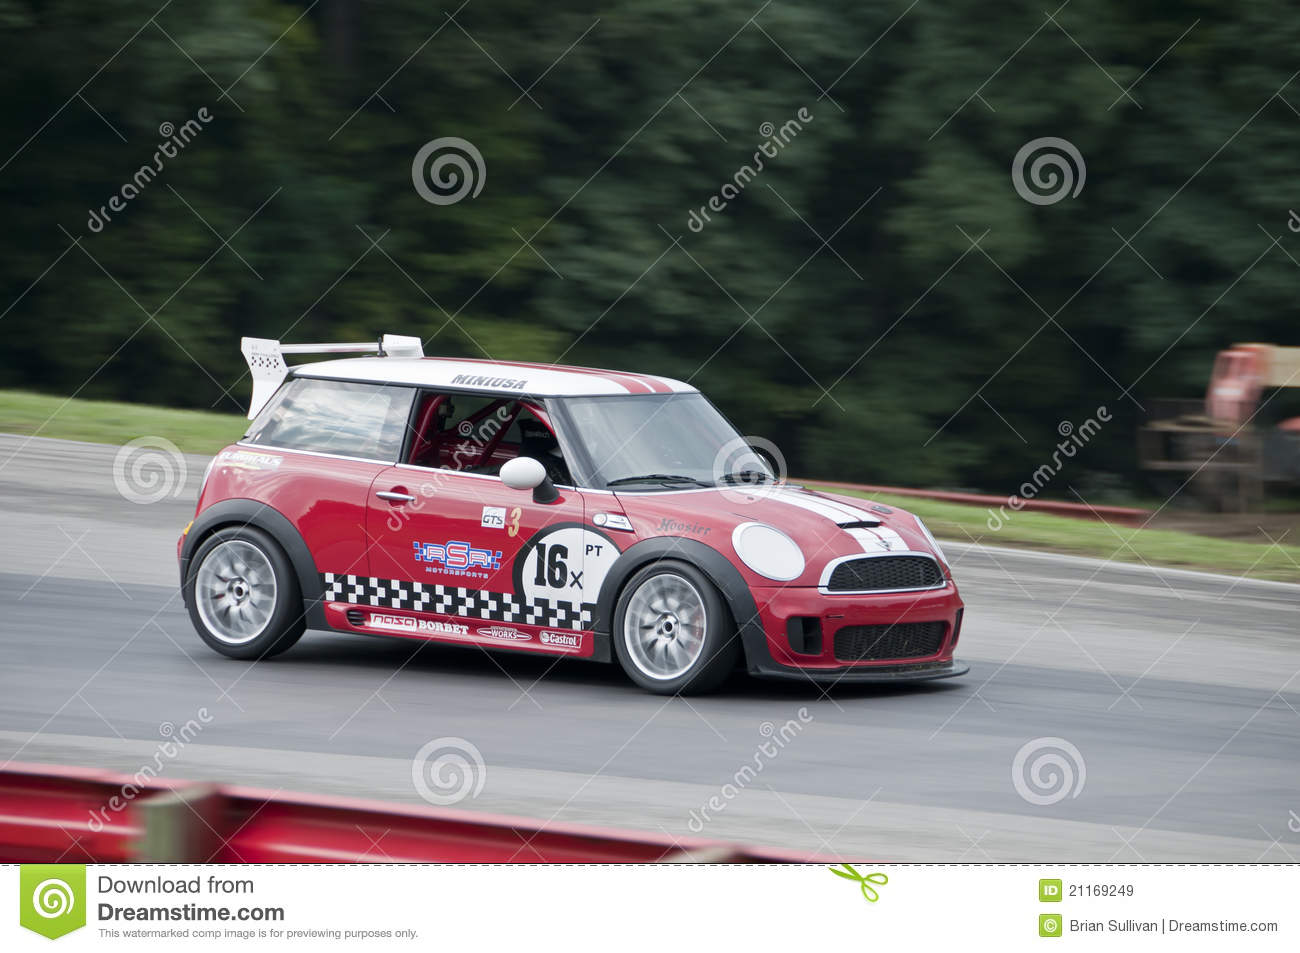 Mini Cooper race car editorial stock image. Image of speed - 21169249